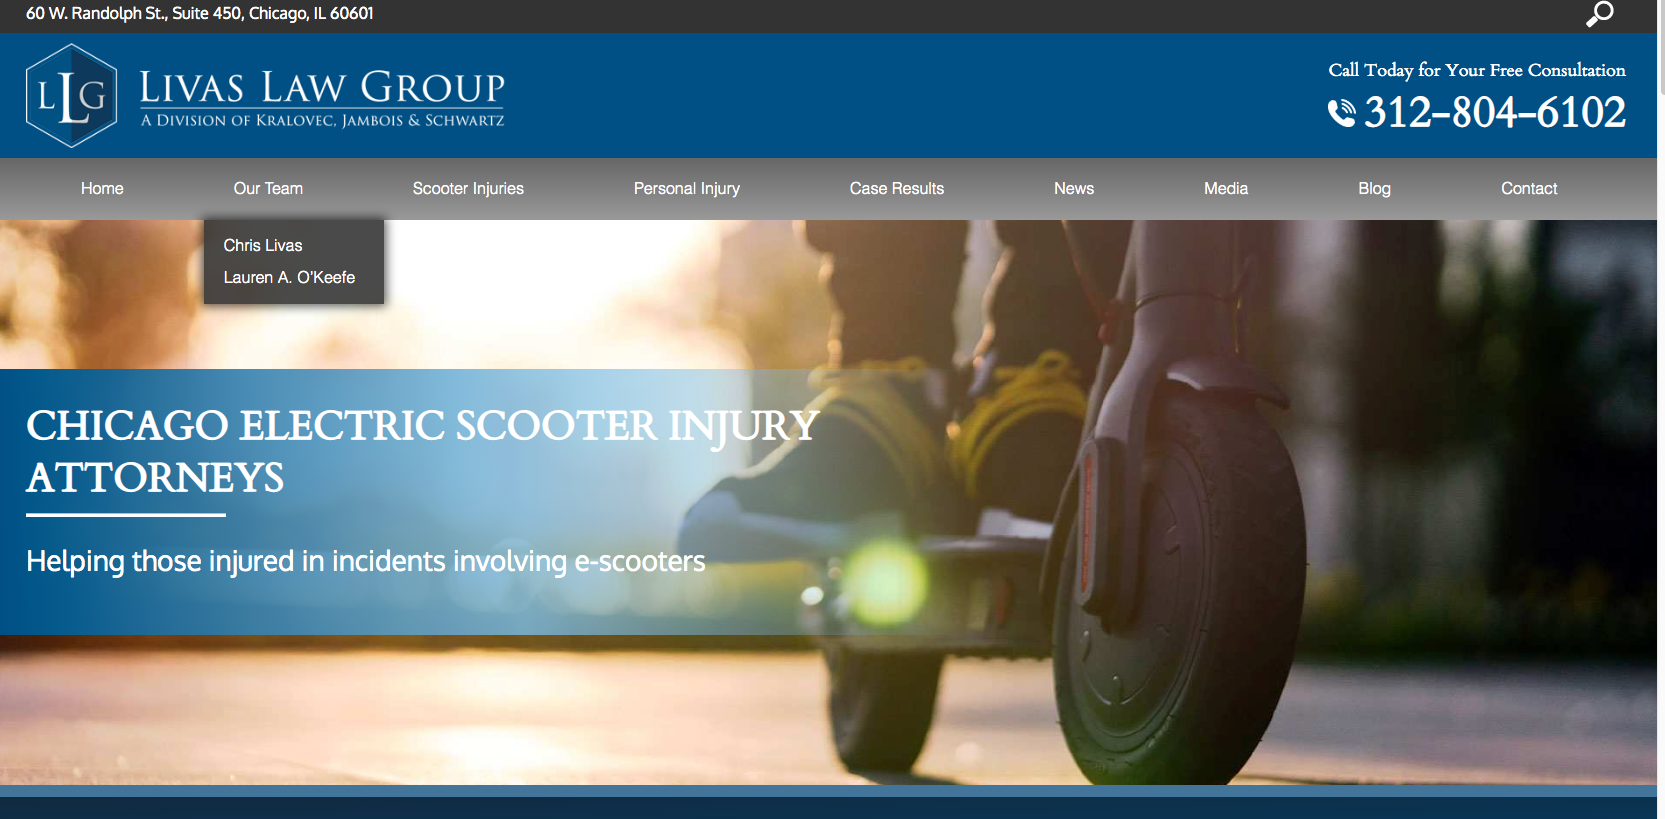 Personal Injury Attorney Website Experts | PI Lawyer Web